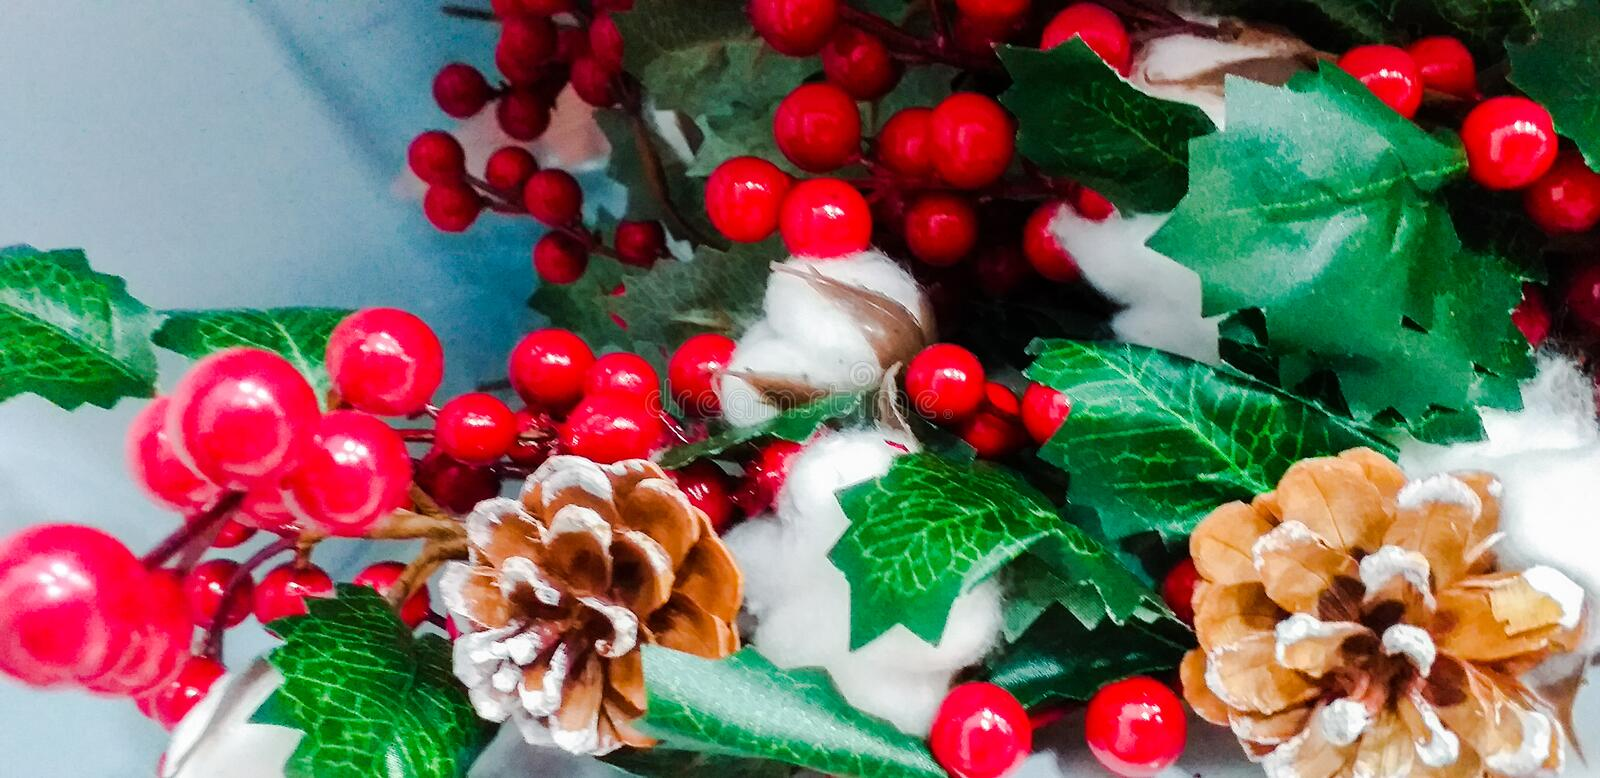 Christmas decorations with beautiful classic Christmas red with pine cones and baxxhe as tradition dictates royalty free stock images